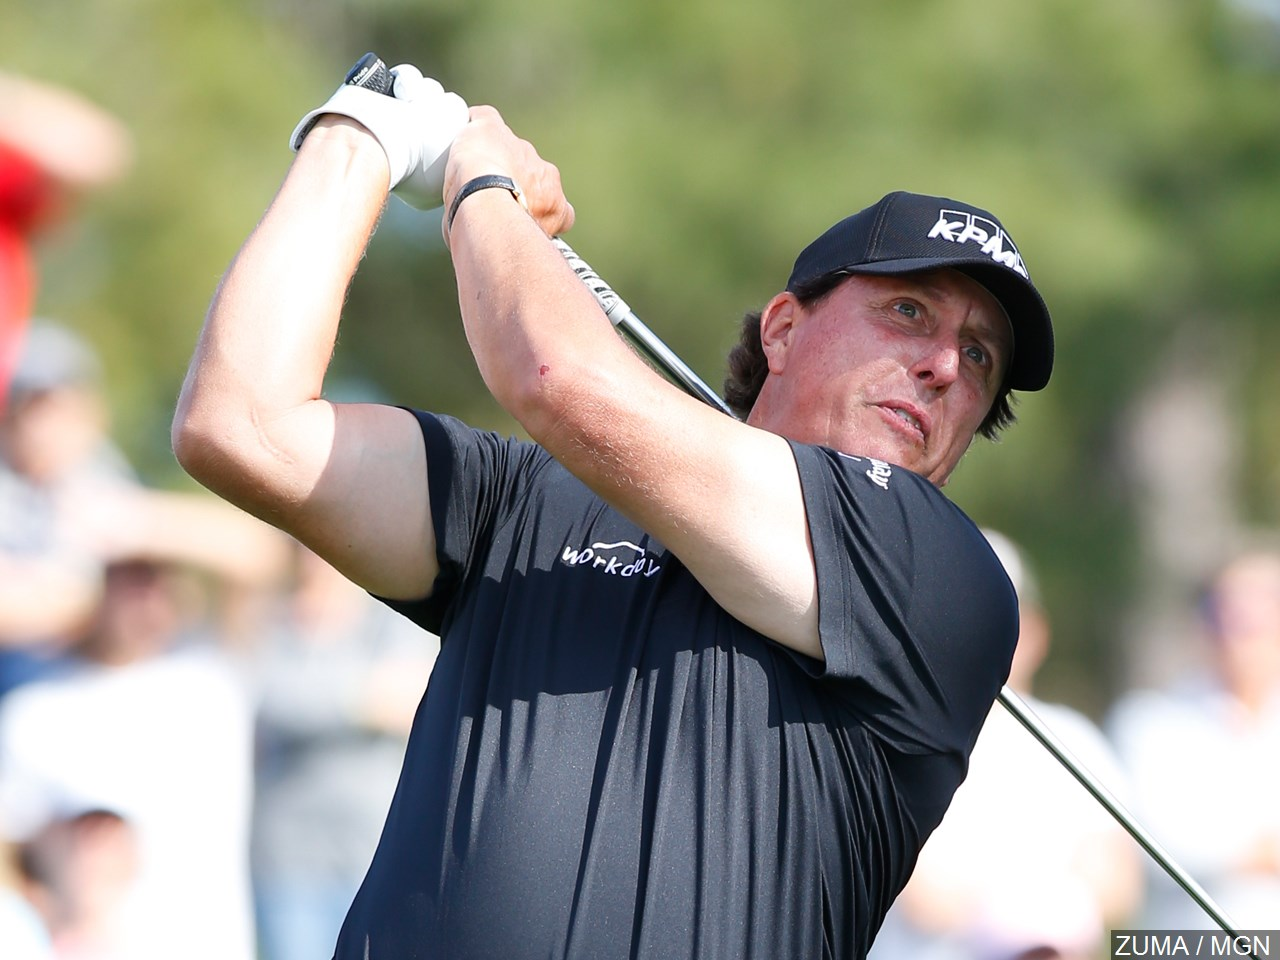 Phil Mickelson sets early lead at PGA Championship, and a chance at history